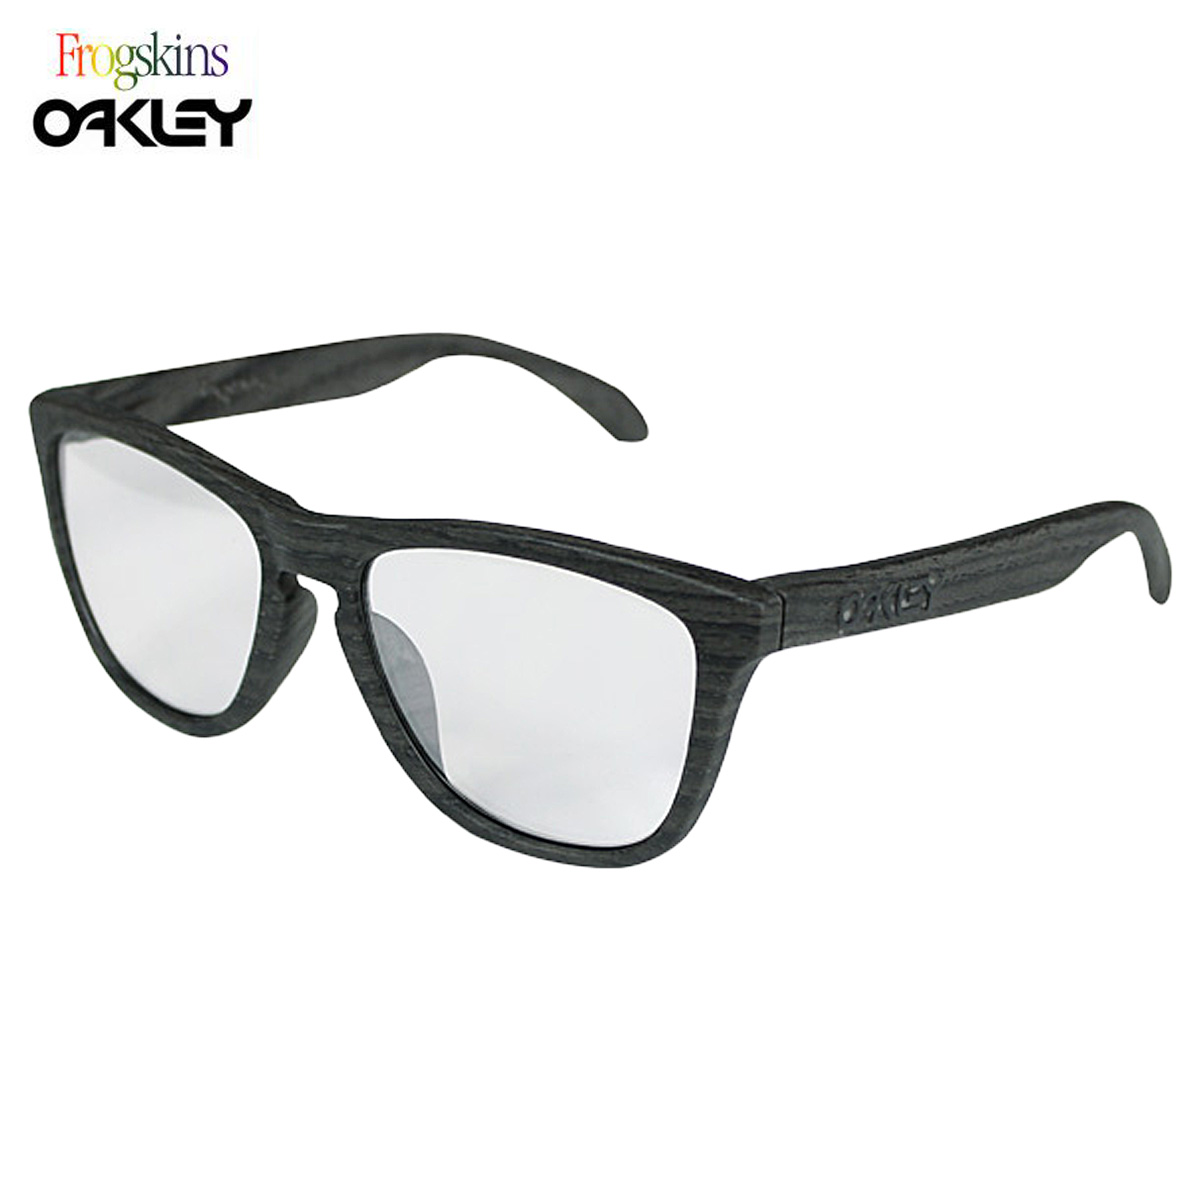 oakley wood grain frogskins